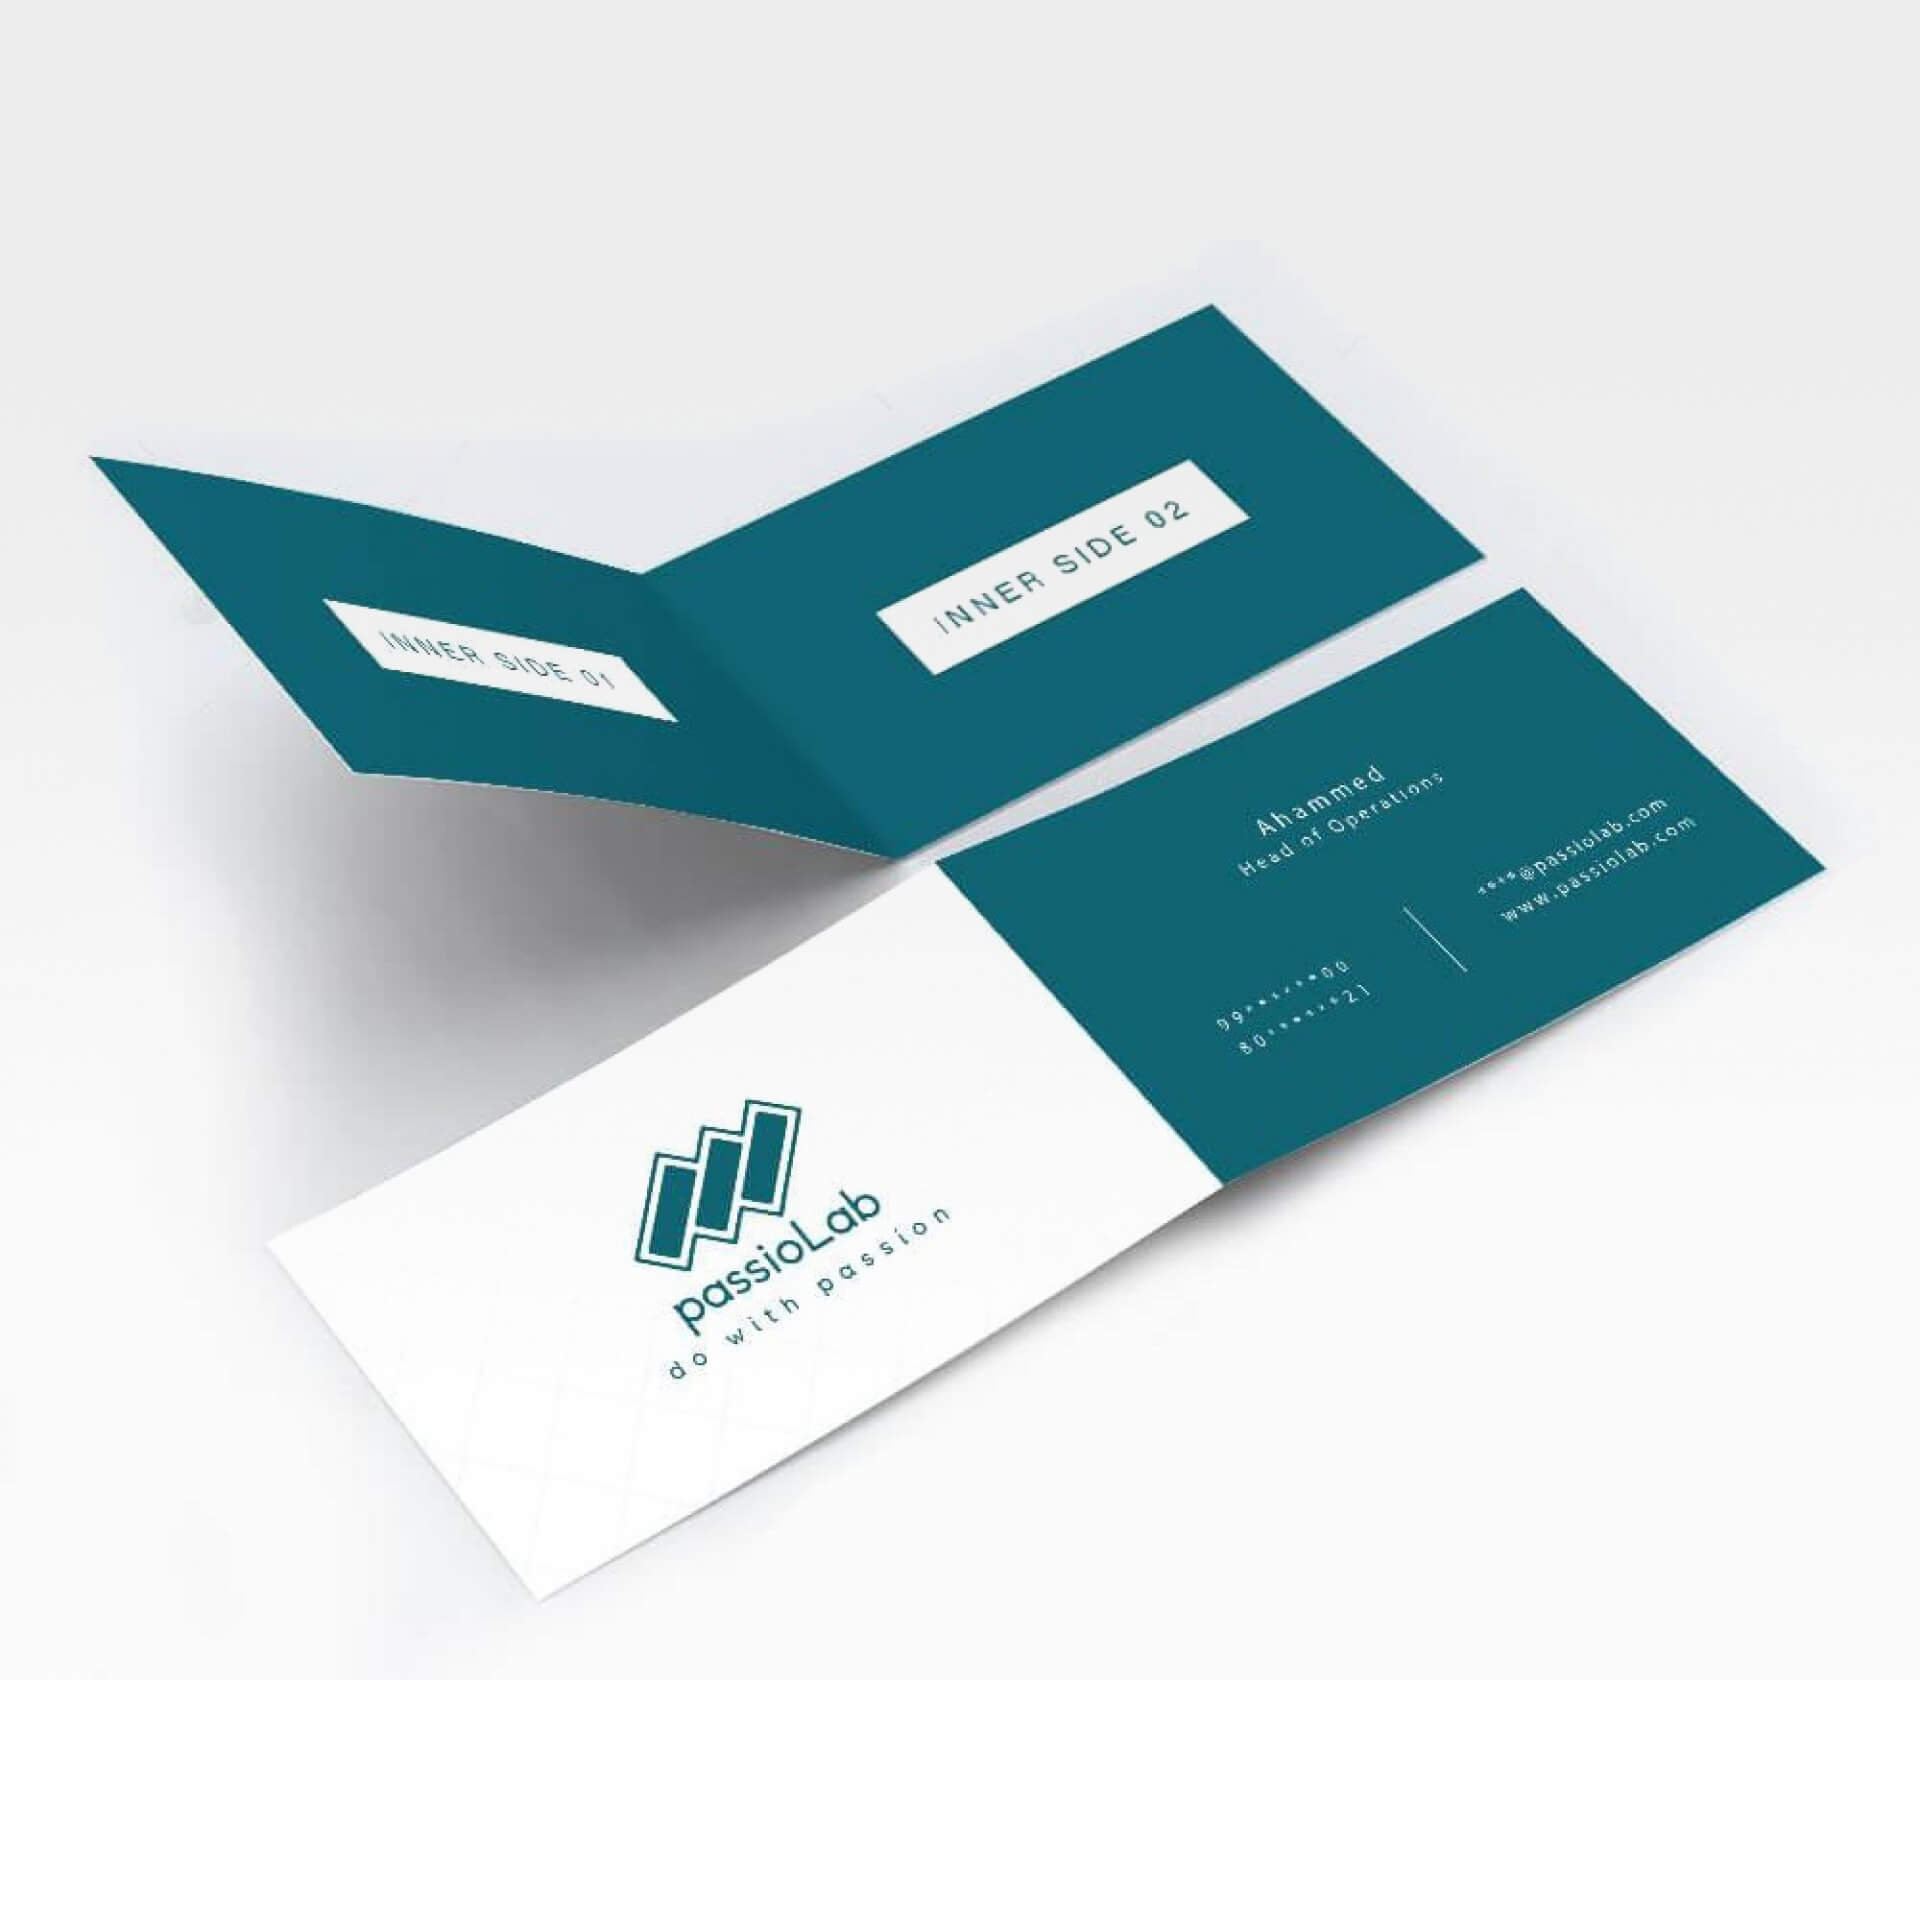 004 Template Ideas Folding Business Fascinating Card Tri In Fold Over Business Card Template